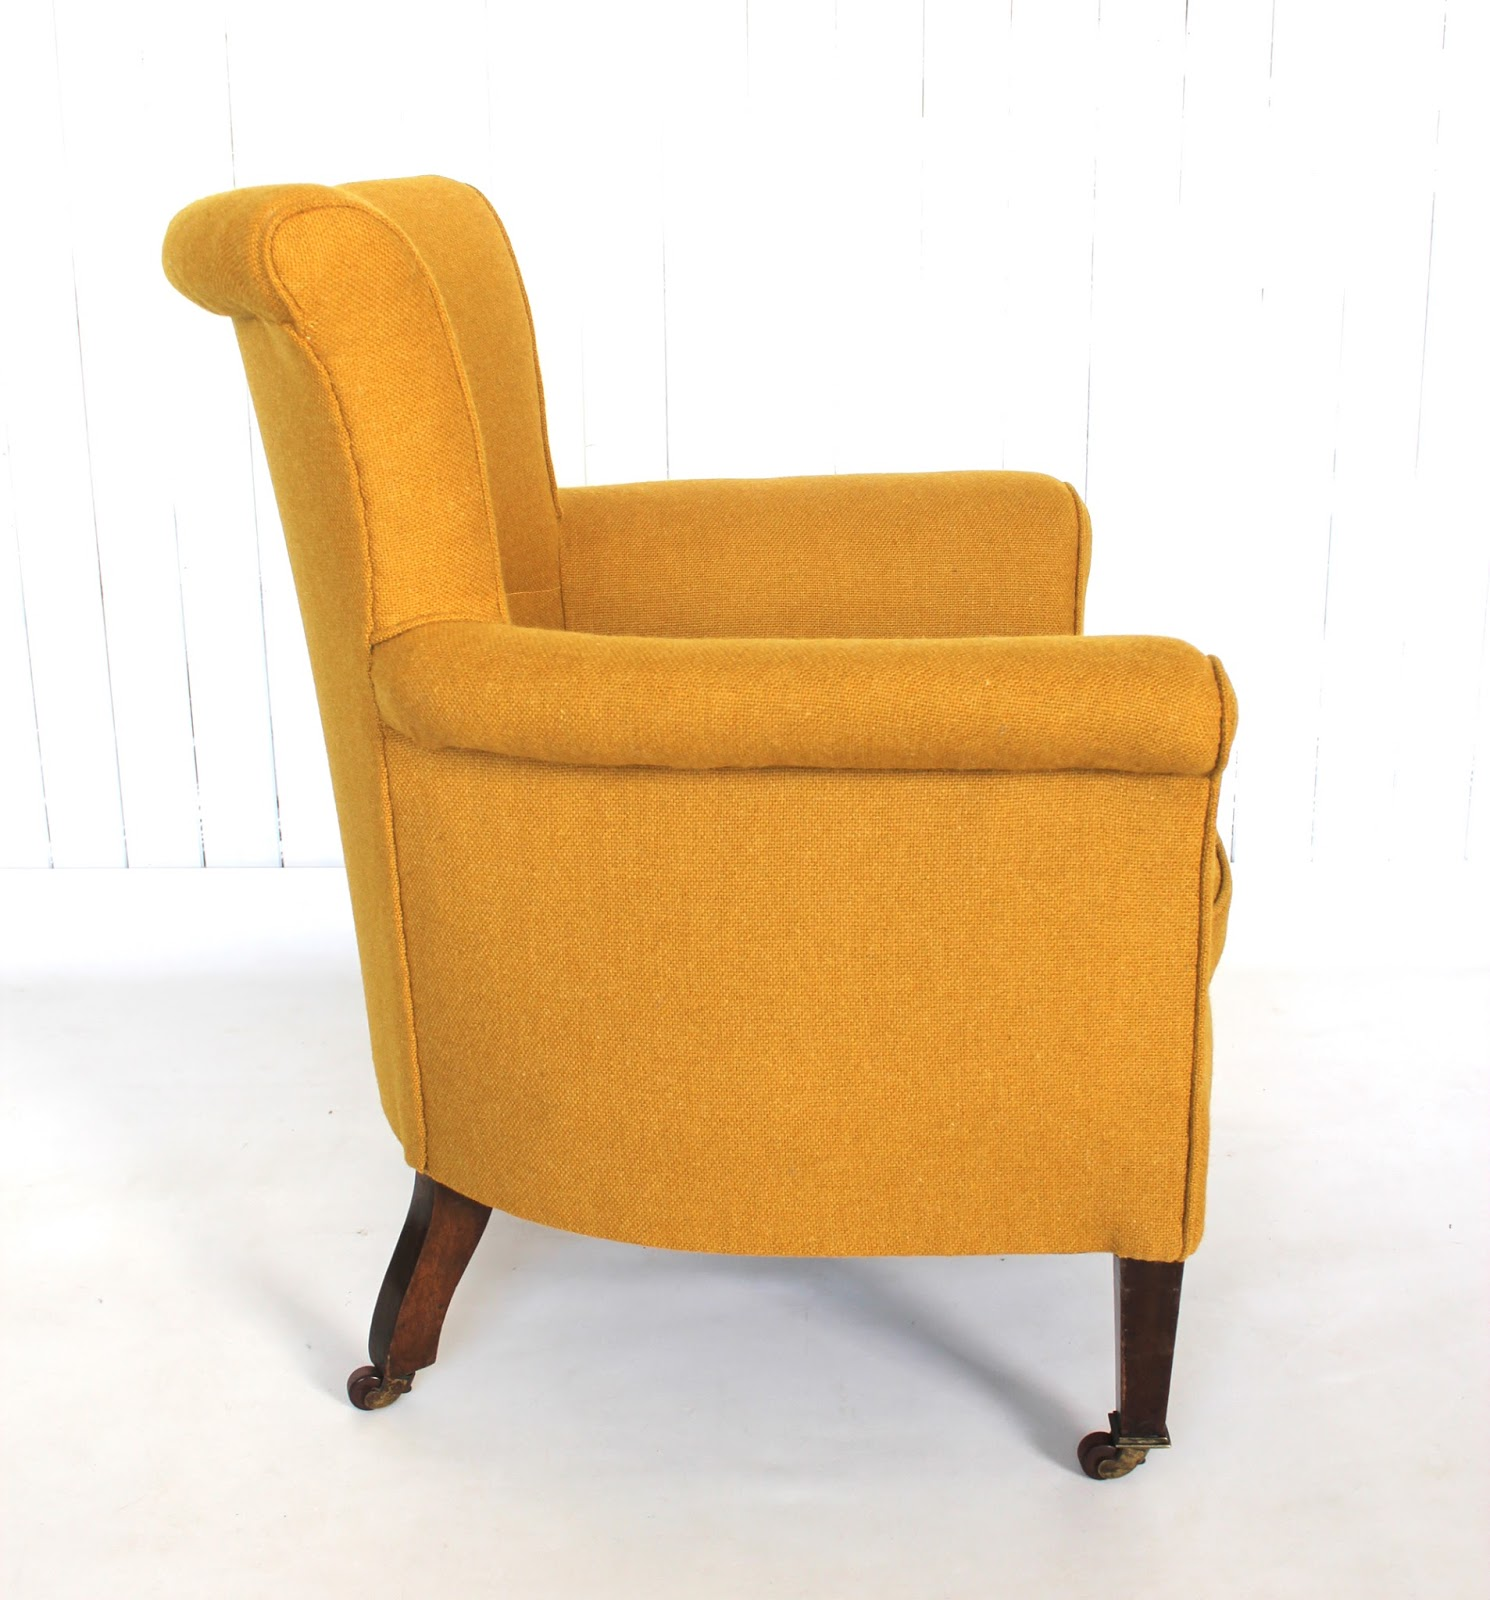 But Whichever Way You Look At It, And Regardless Of Age, The Tub Chair Is  Irrevocably Victorian; Its Rolled Curves And Horseshoe Shape Resembling Its  ...